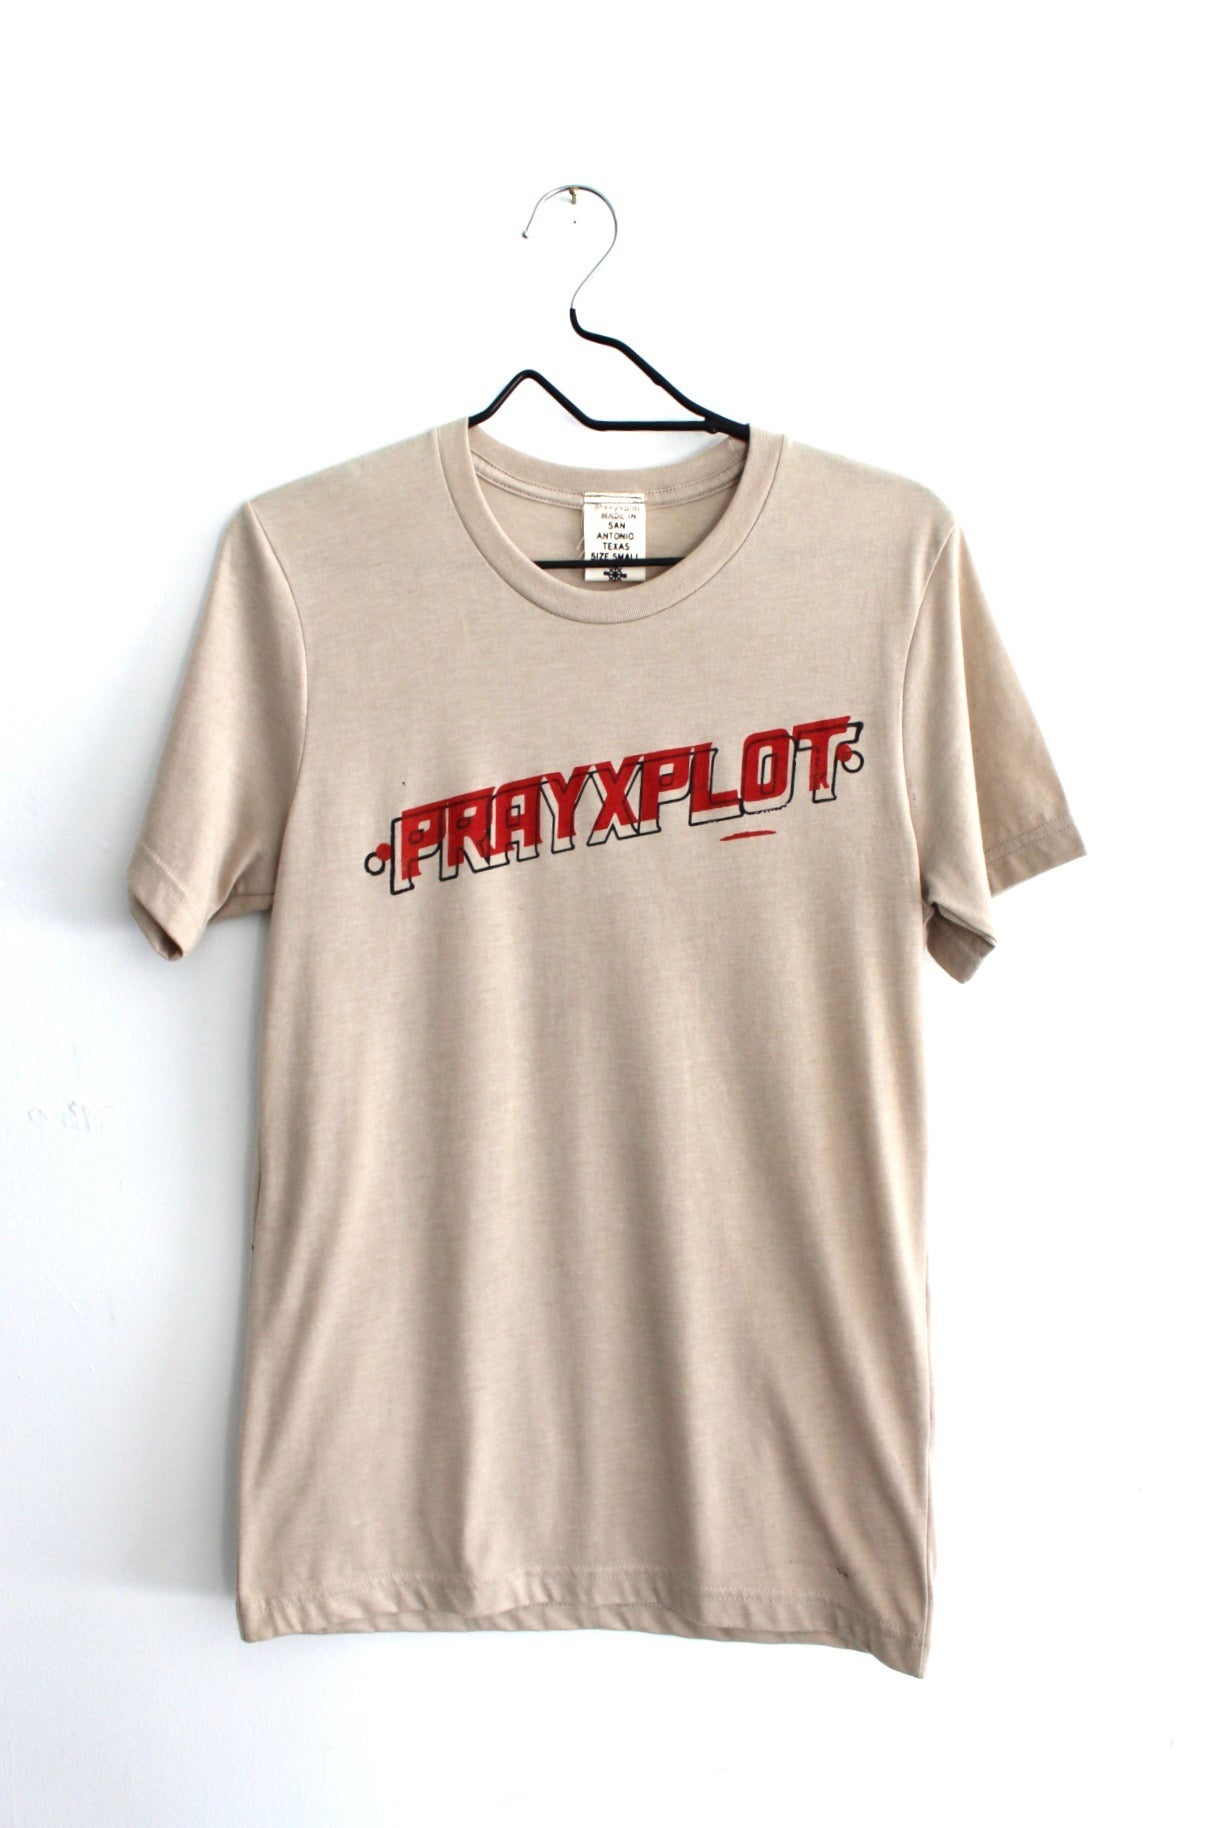 Image of that hot tee in tan